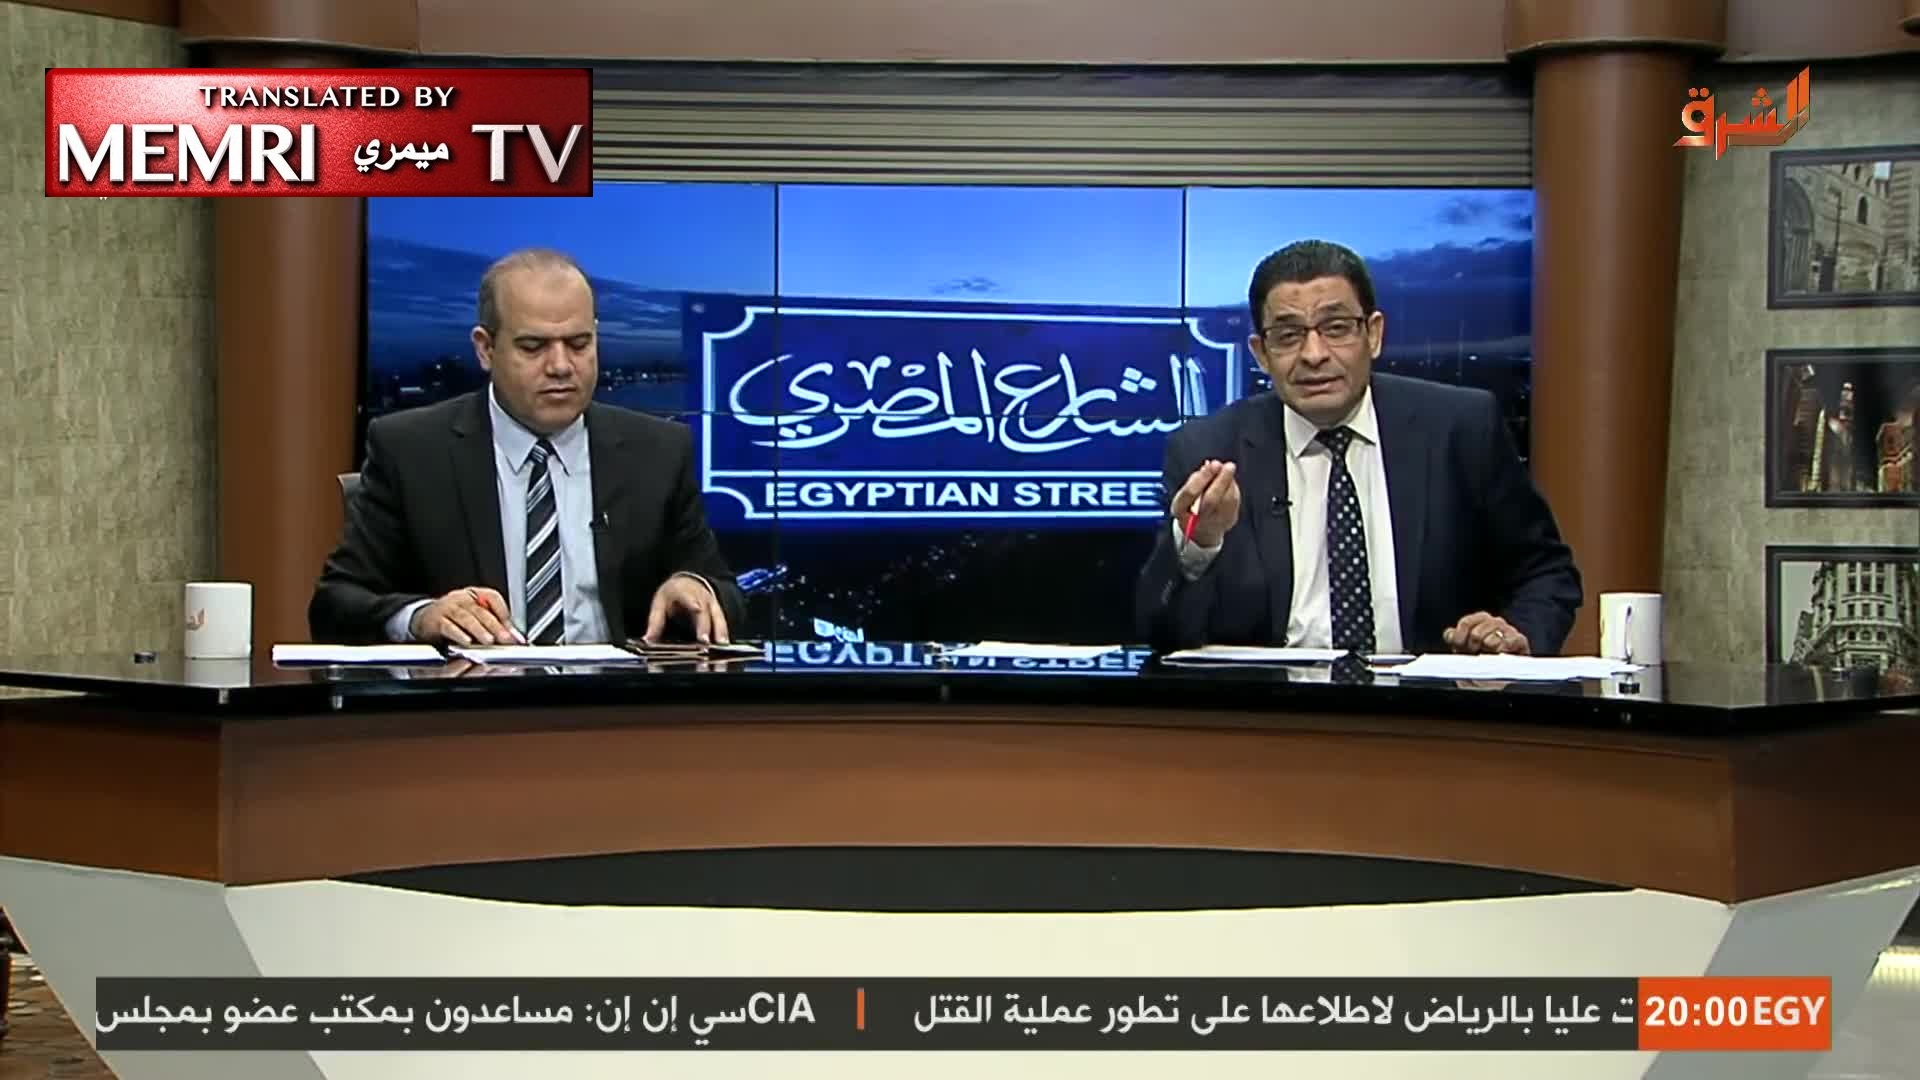 Egyptian Journalist Emad Albeheery on MB TV: President Al-Sisi's Mother Is Jewish